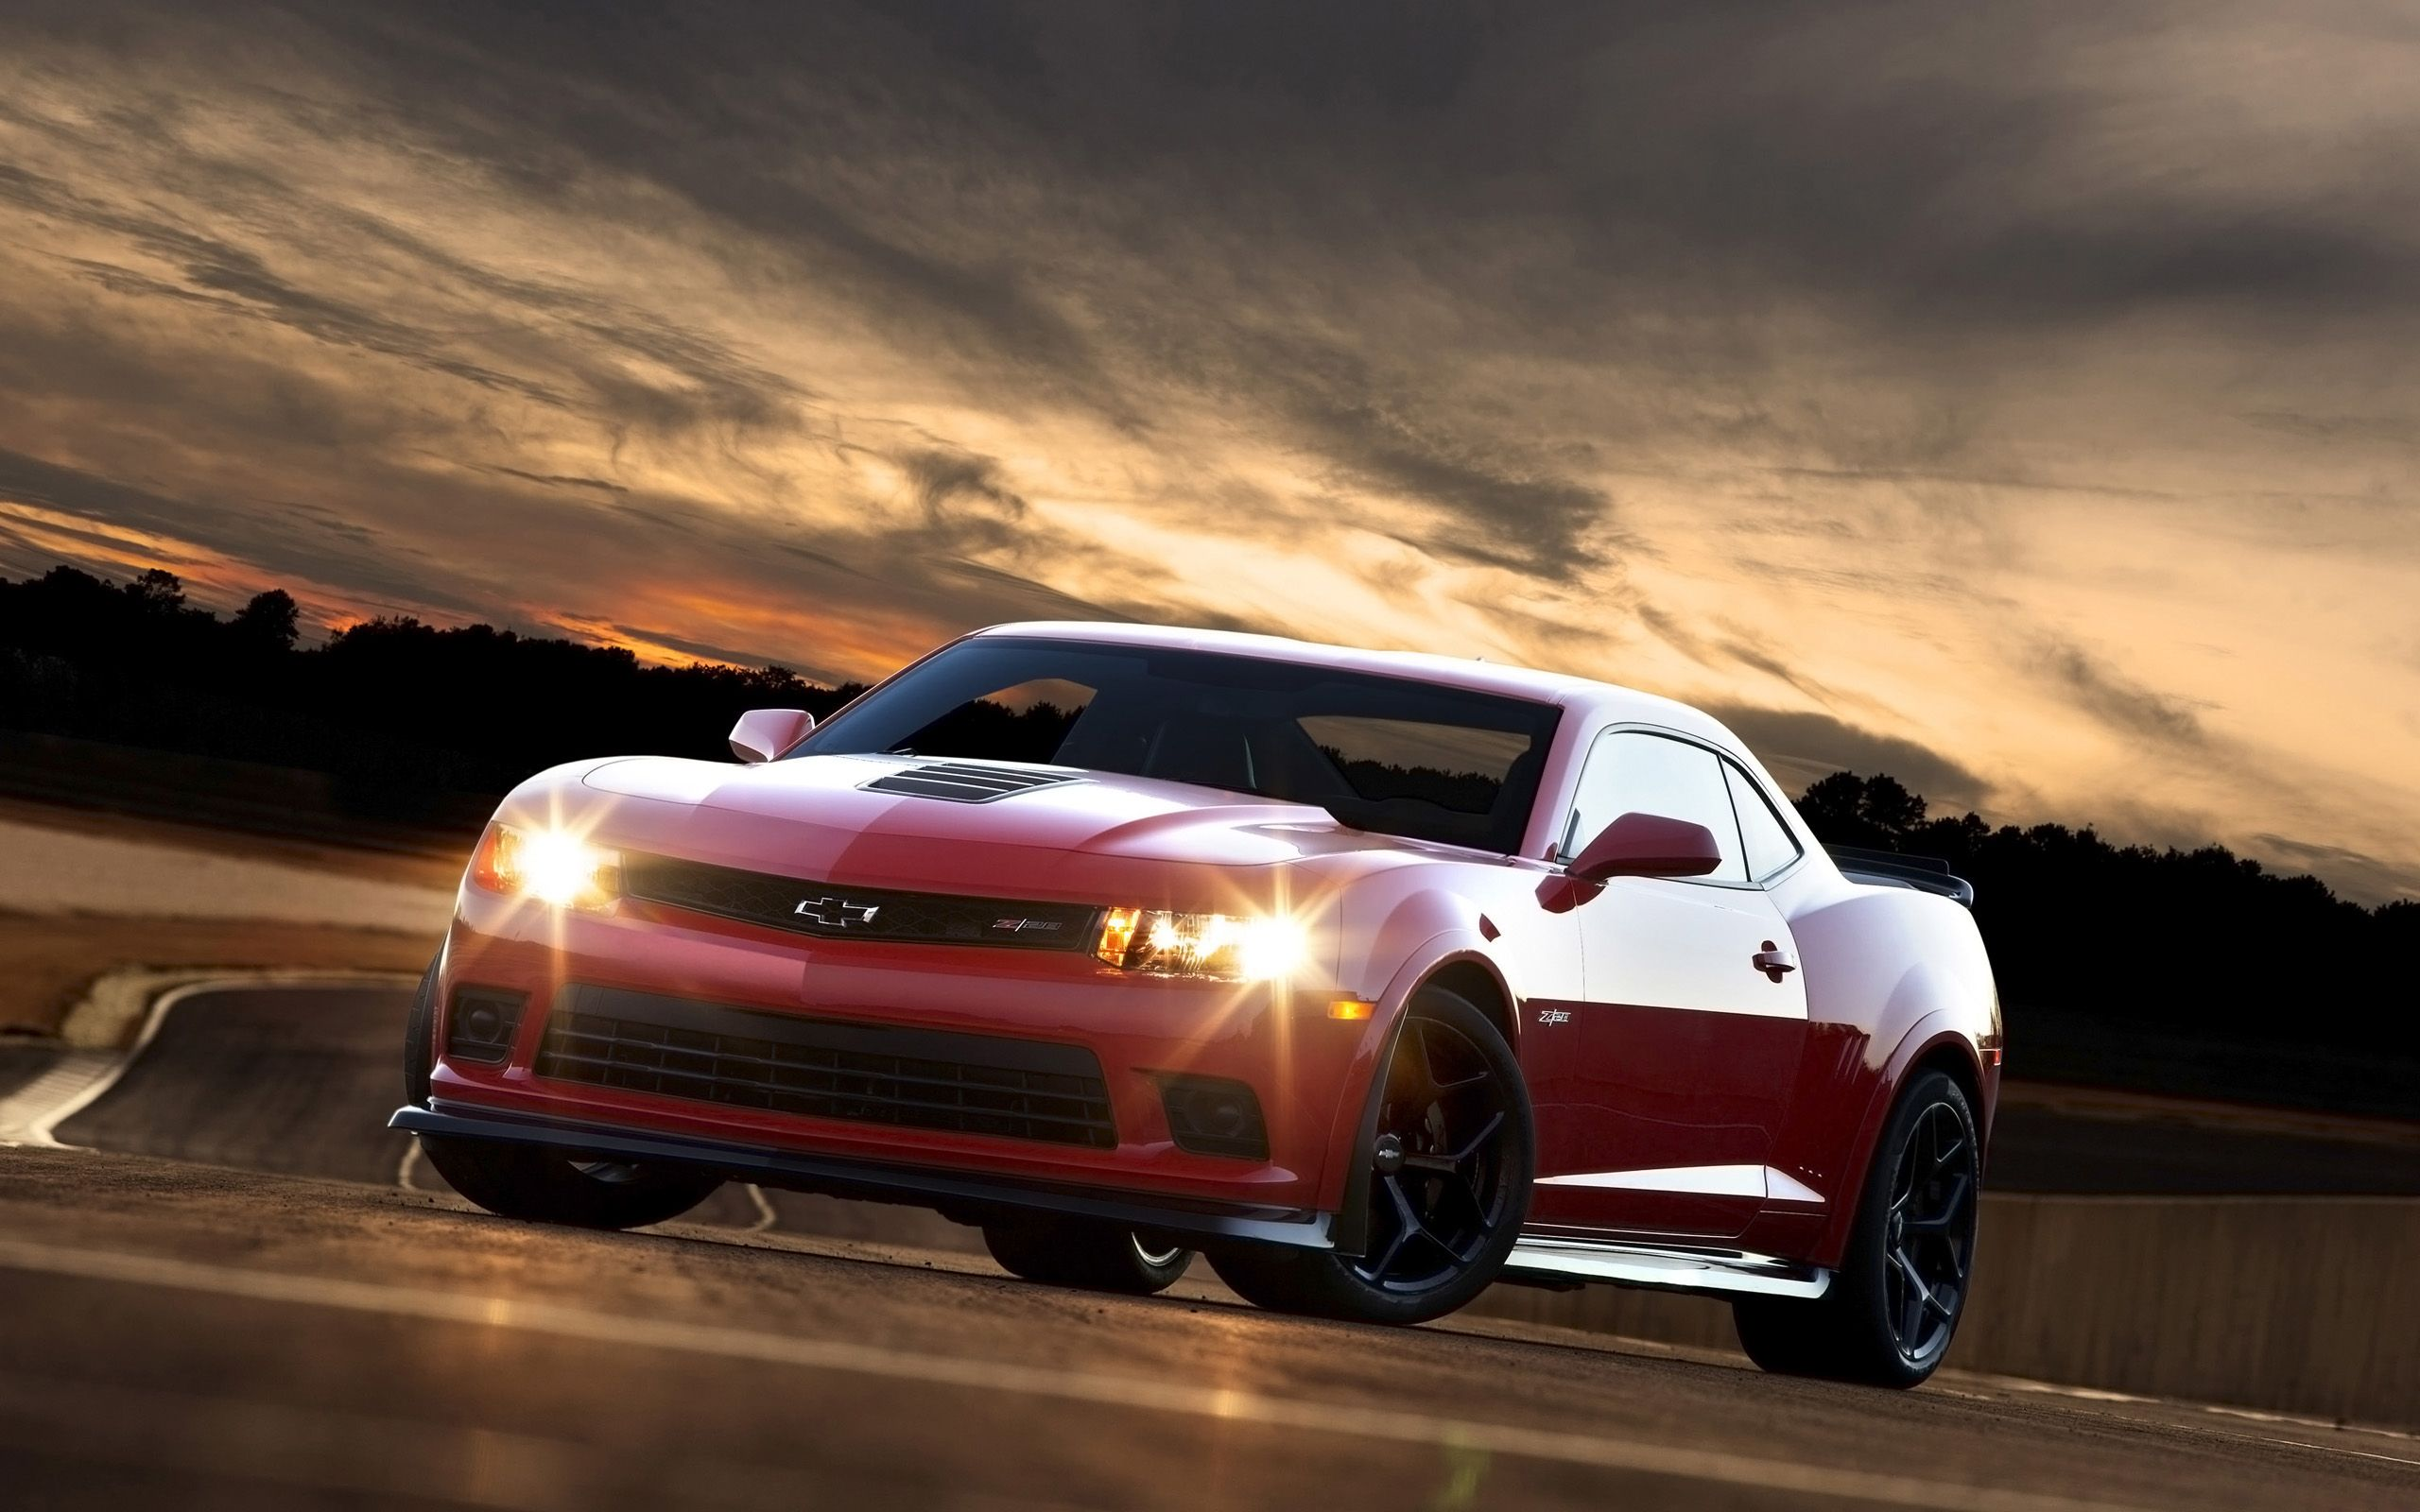 2014 Camaro Z28 Wallpapers Top Free 2014 Camaro Z28 Backgrounds Wallpaperaccess